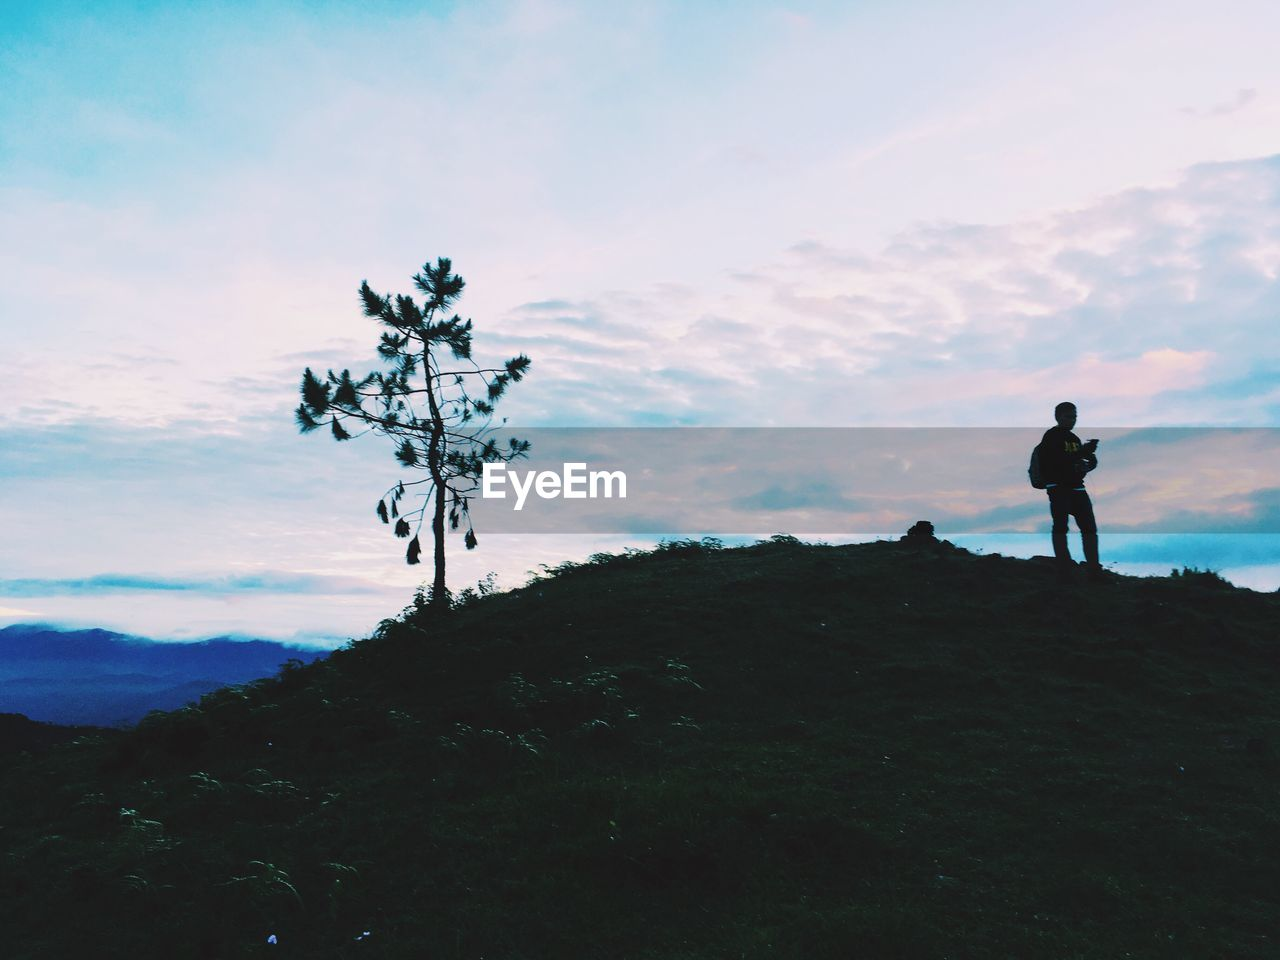 silhouette, adventure, hiking, mountain, nature, solitude, outdoors, tranquil scene, one person, rock - object, scenics, sky, standing, real people, landscape, beauty in nature, tranquility, cloud - sky, men, full length, leisure activity, sunset, day, vacations, tree, people